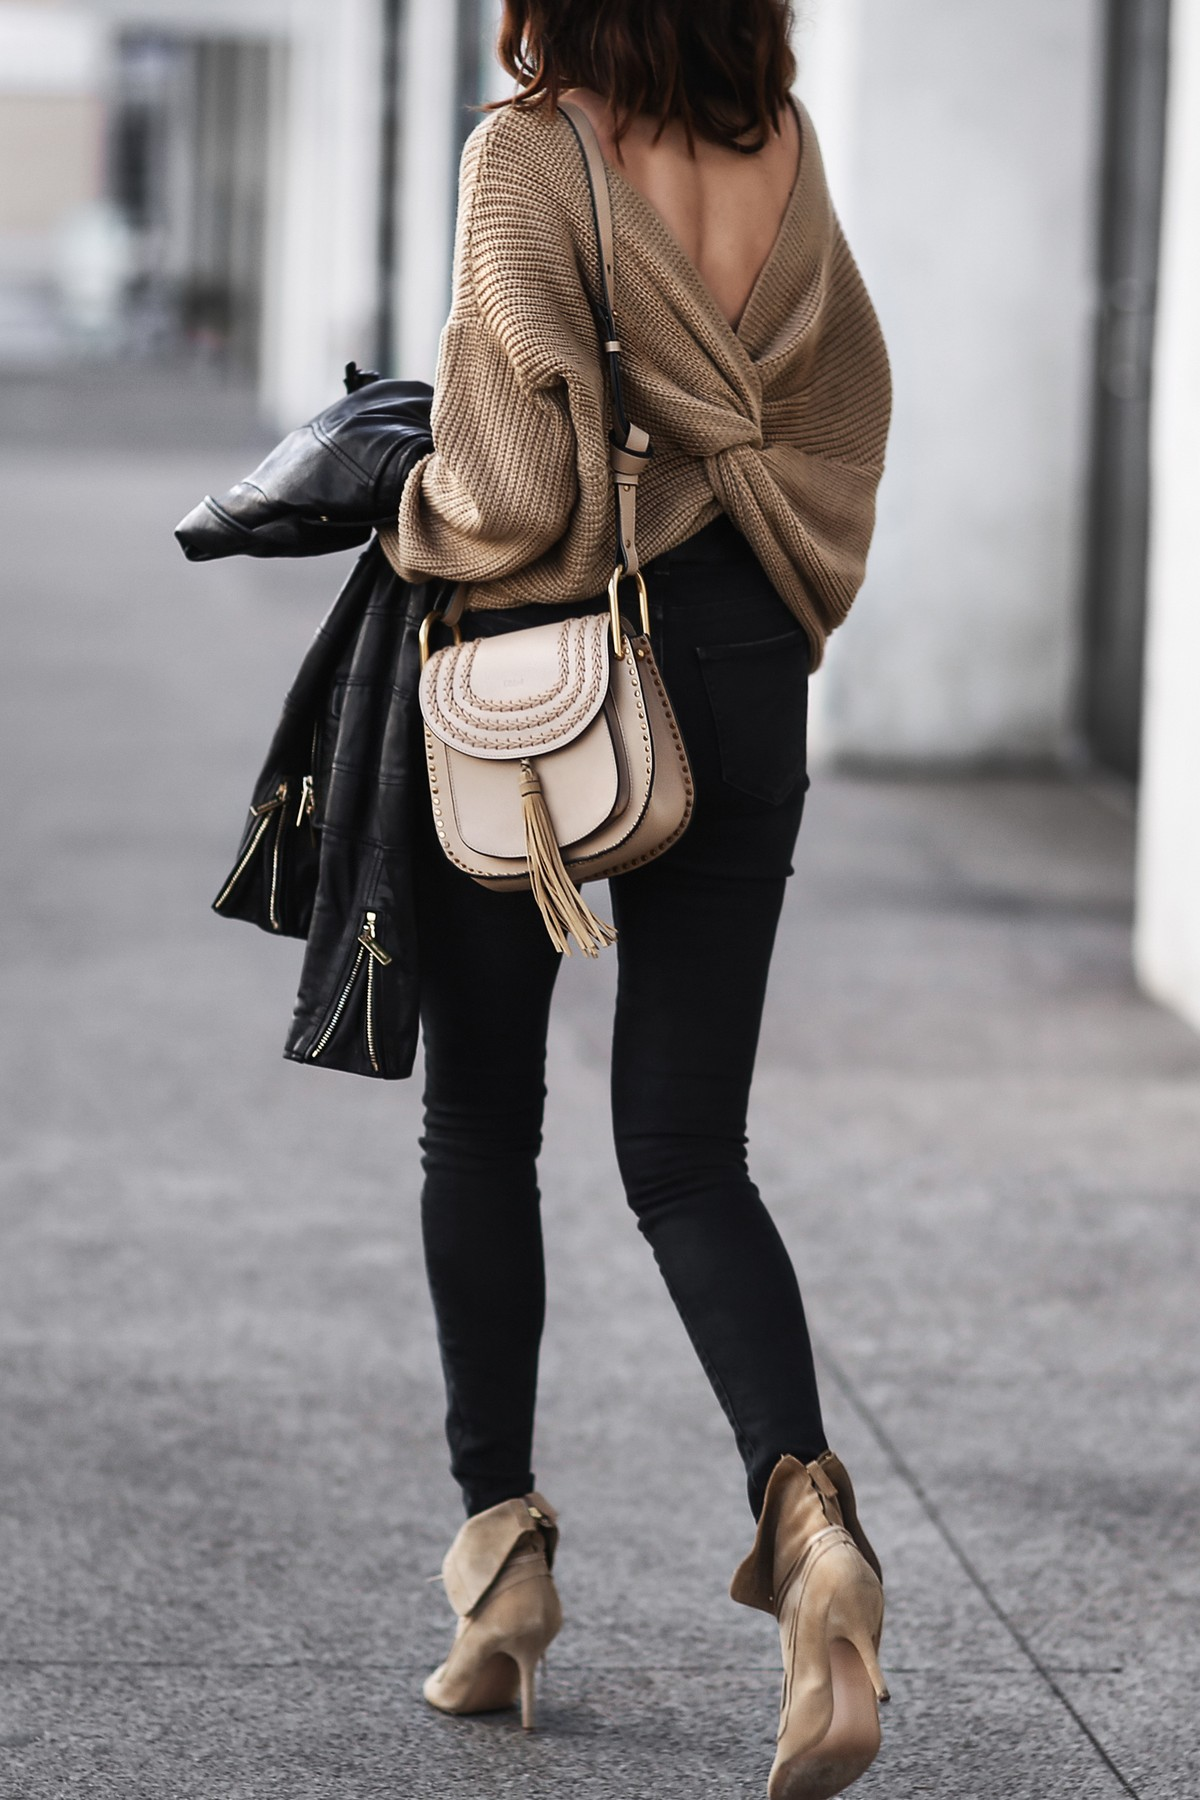 slouchy camel sweater with twisted back, black skinny jeans